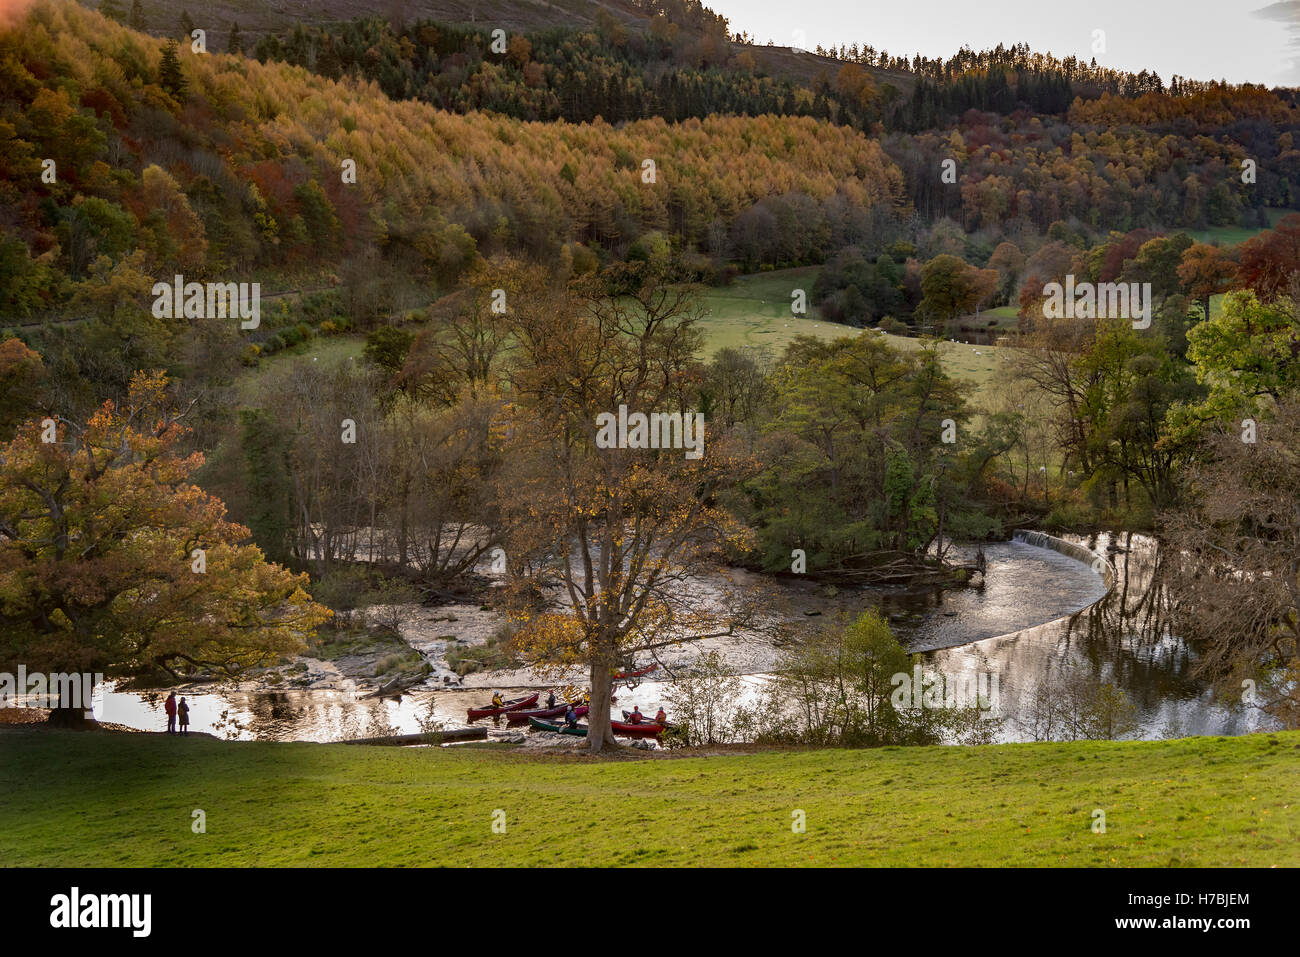 River Dee at llangollen Denbighshire North Wales. Autumn colours and leaves on the trees. Stock Photo